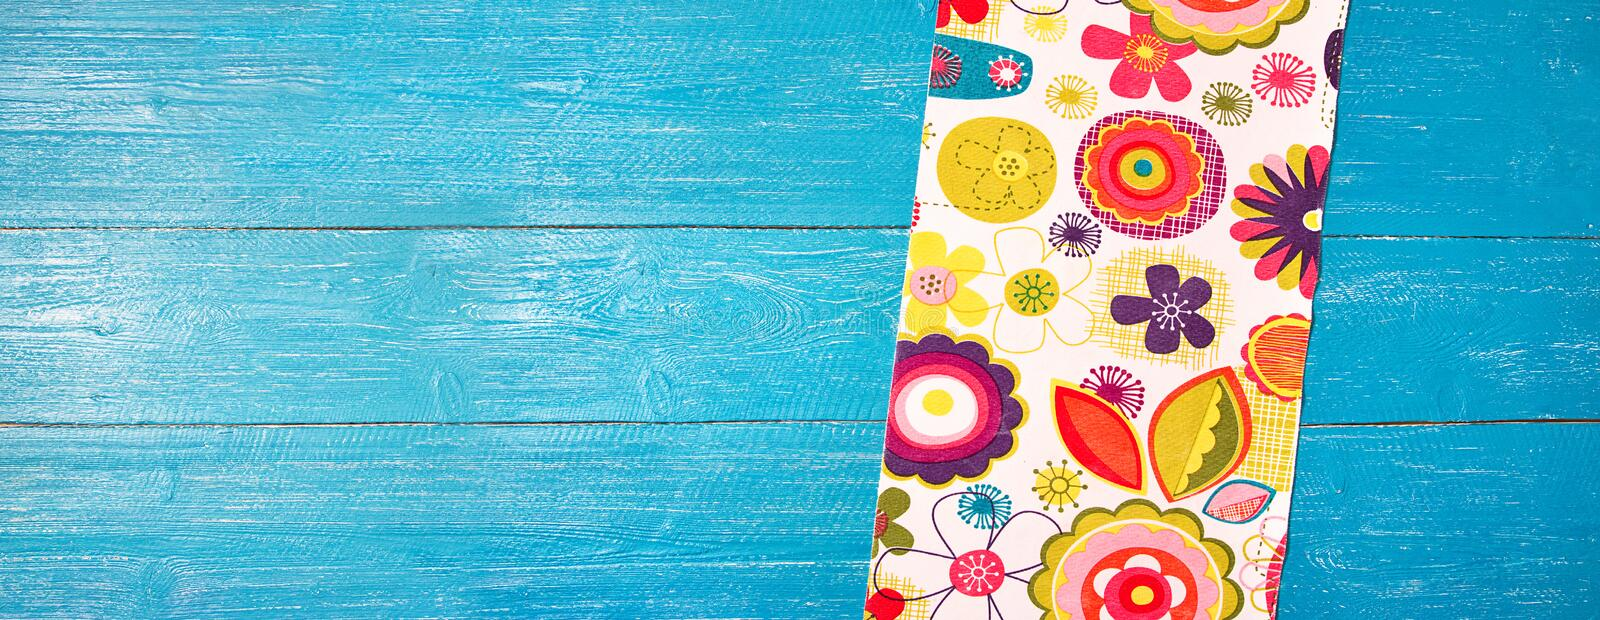 Summer table background stock images